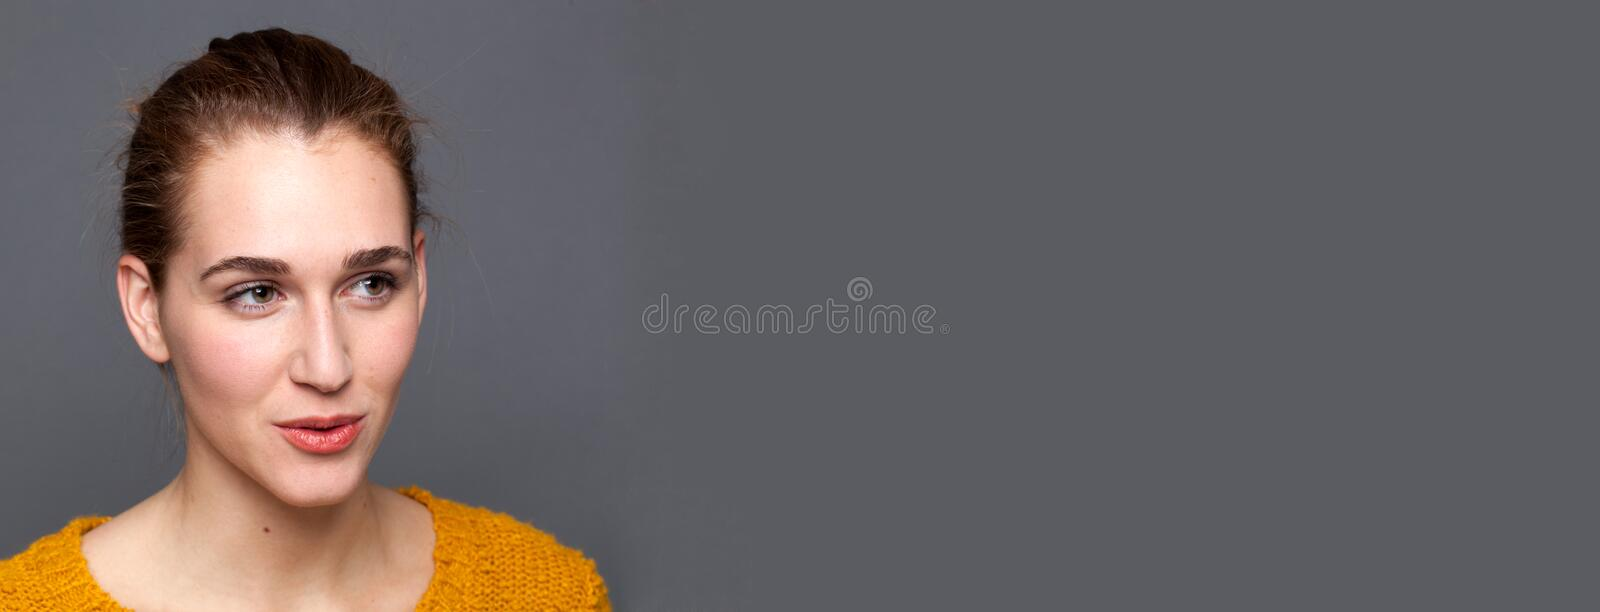 Smiling, natural beautiful girl expressing emotions of happiness and wellness royalty free stock photo